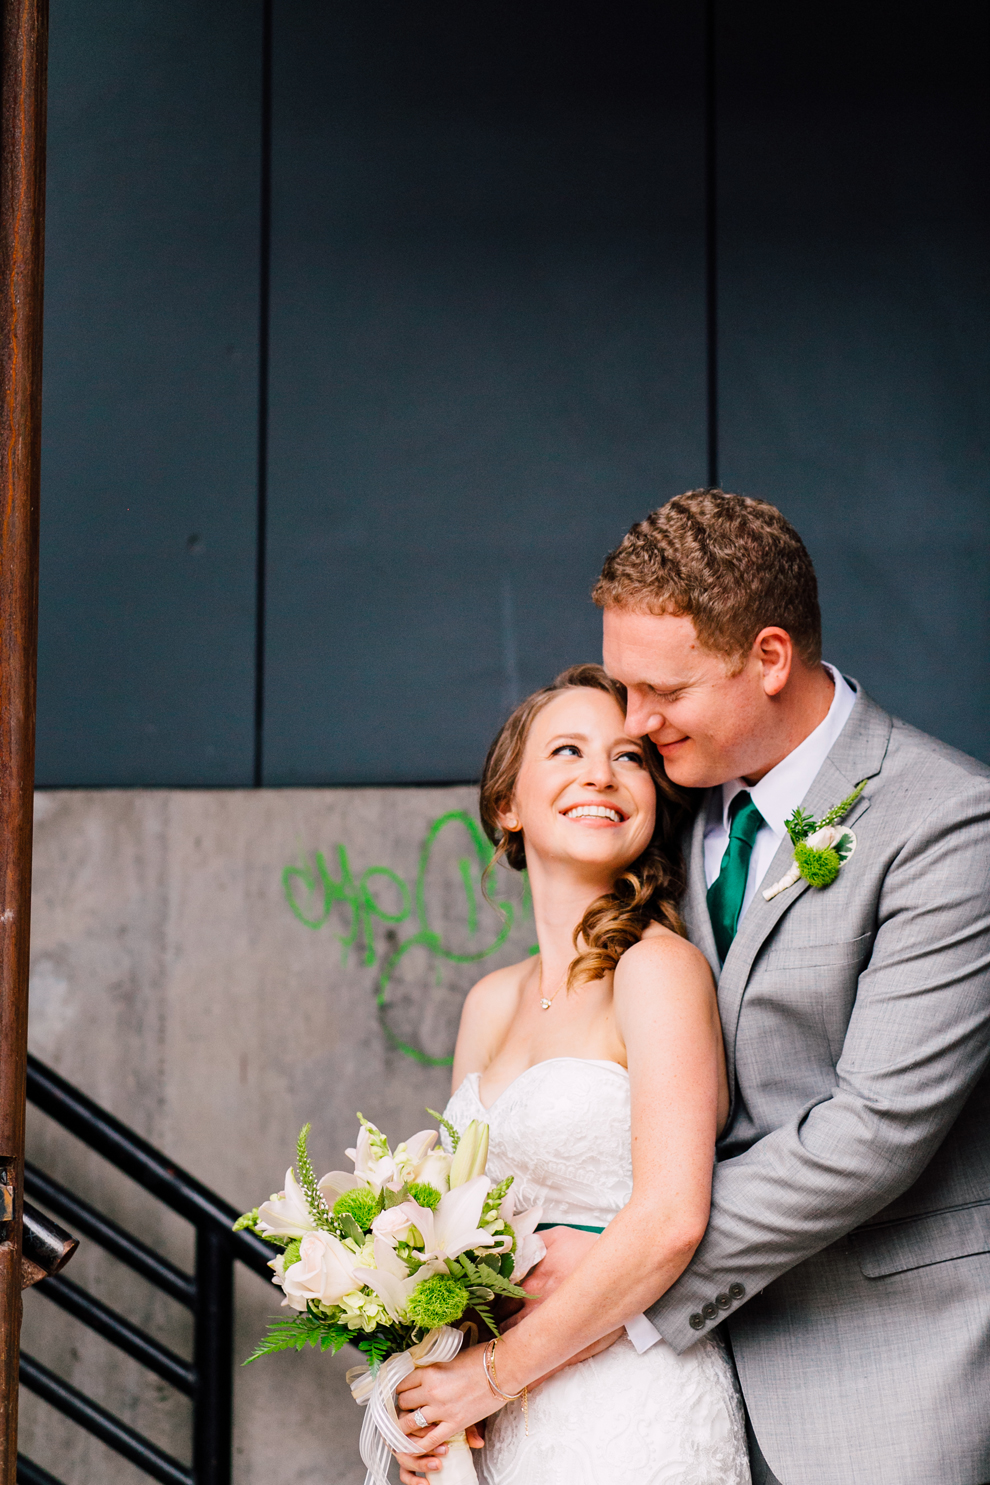 036-fremont-foundry-seattle-wedding-katheryn-moran-photography-anthony-kaitlin.jpg